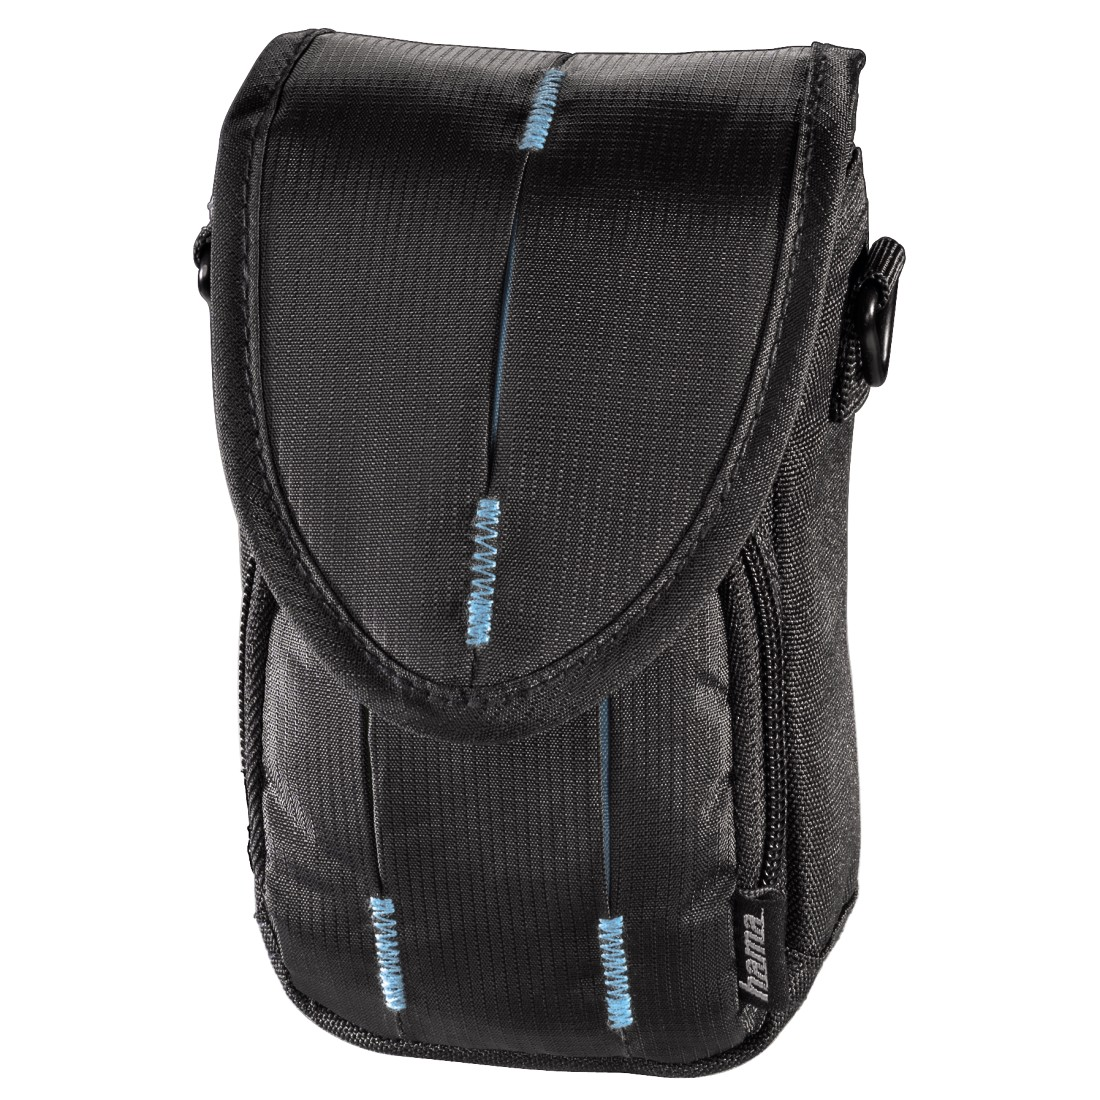 abx High-Res Image - Hama, Canberra Camera Bag, 90L, black/blue